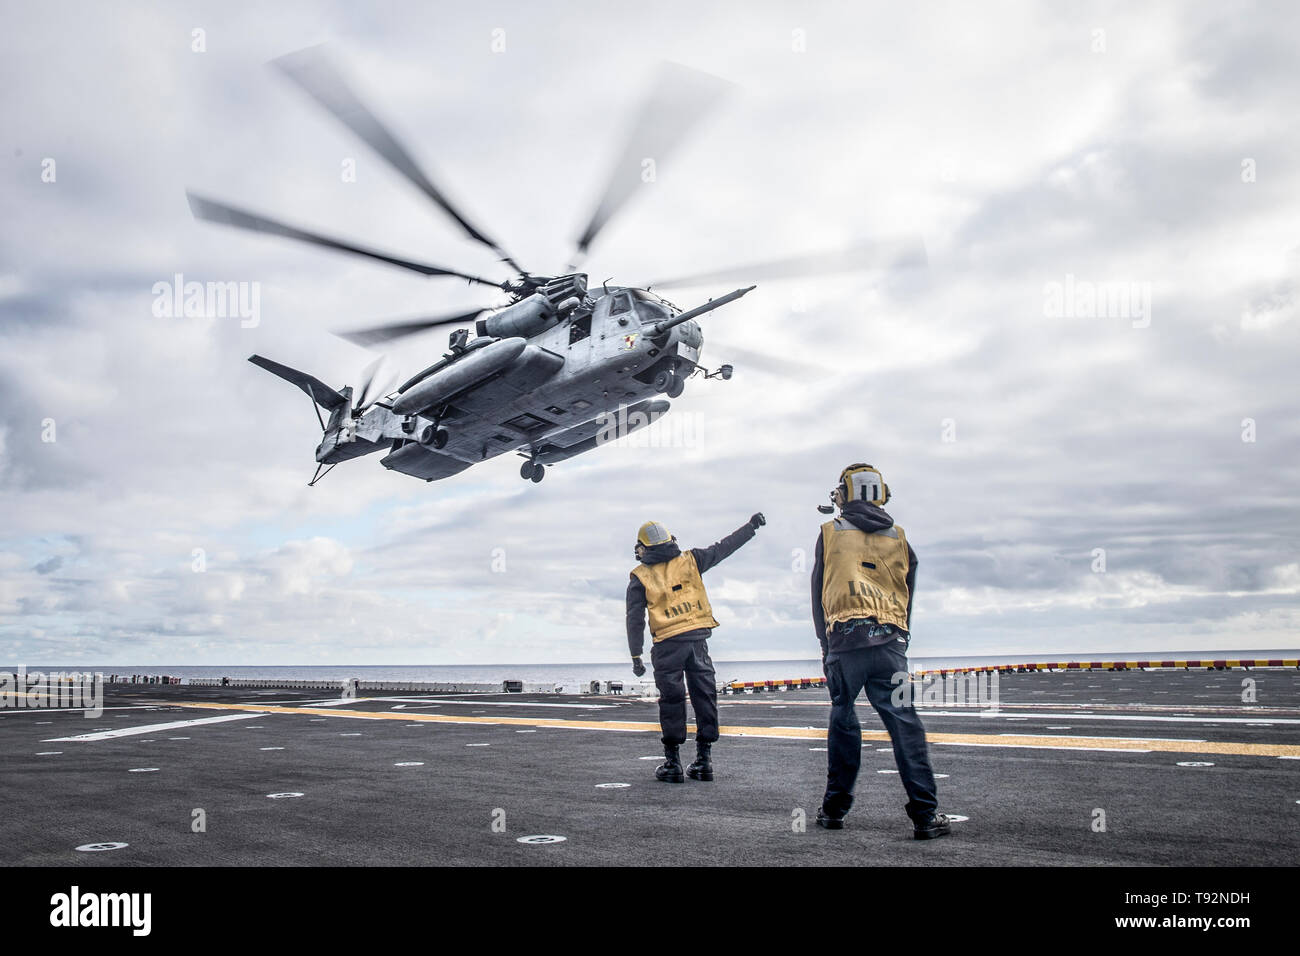 190505-M-EC058-0130 PACIFIC OCEAN (May 5, 2019) A CH-53E Super Stallion with Marine Medium Tiltrotor Squadron (VMM) 163 (Reinforced), 11th Marine Expeditionary Unit (MEU), prepares to land aboard the amphibious assault ship USS Boxer (LHD 4). The Marines and Sailors of the 11th MEU are conducting routine operations as part of the Boxer Amphibious Ready Group. (U.S. Marine Corps photo by Lance Cpl. Dalton S. Swanbeck) - Stock Image